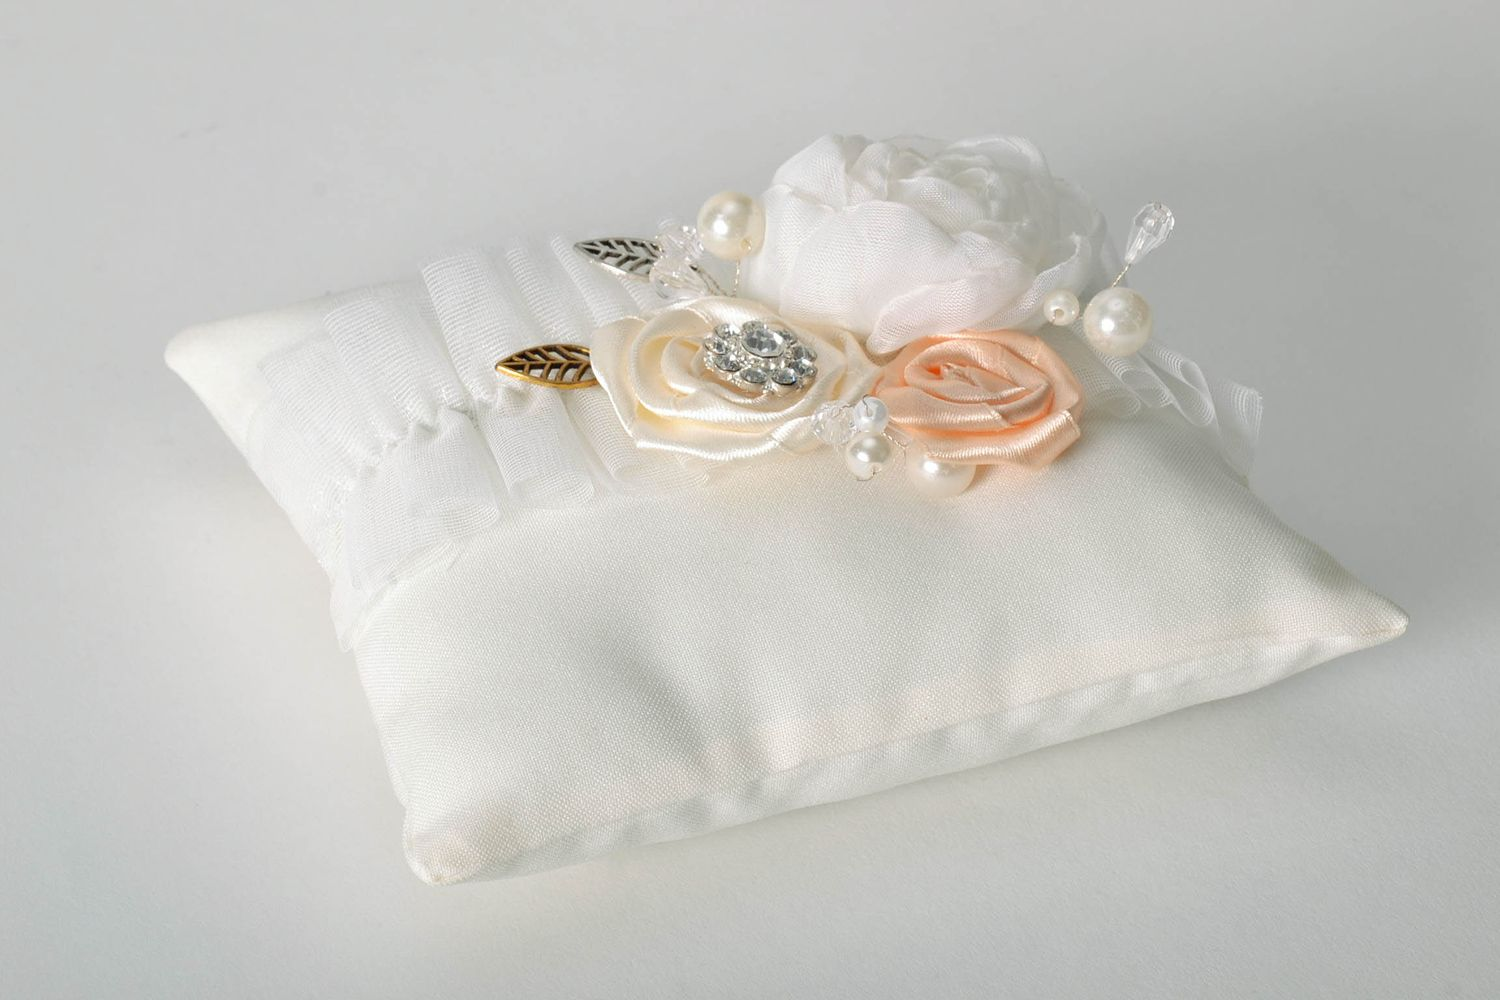 wedding accessories Small ring pillow - MADEheart.com